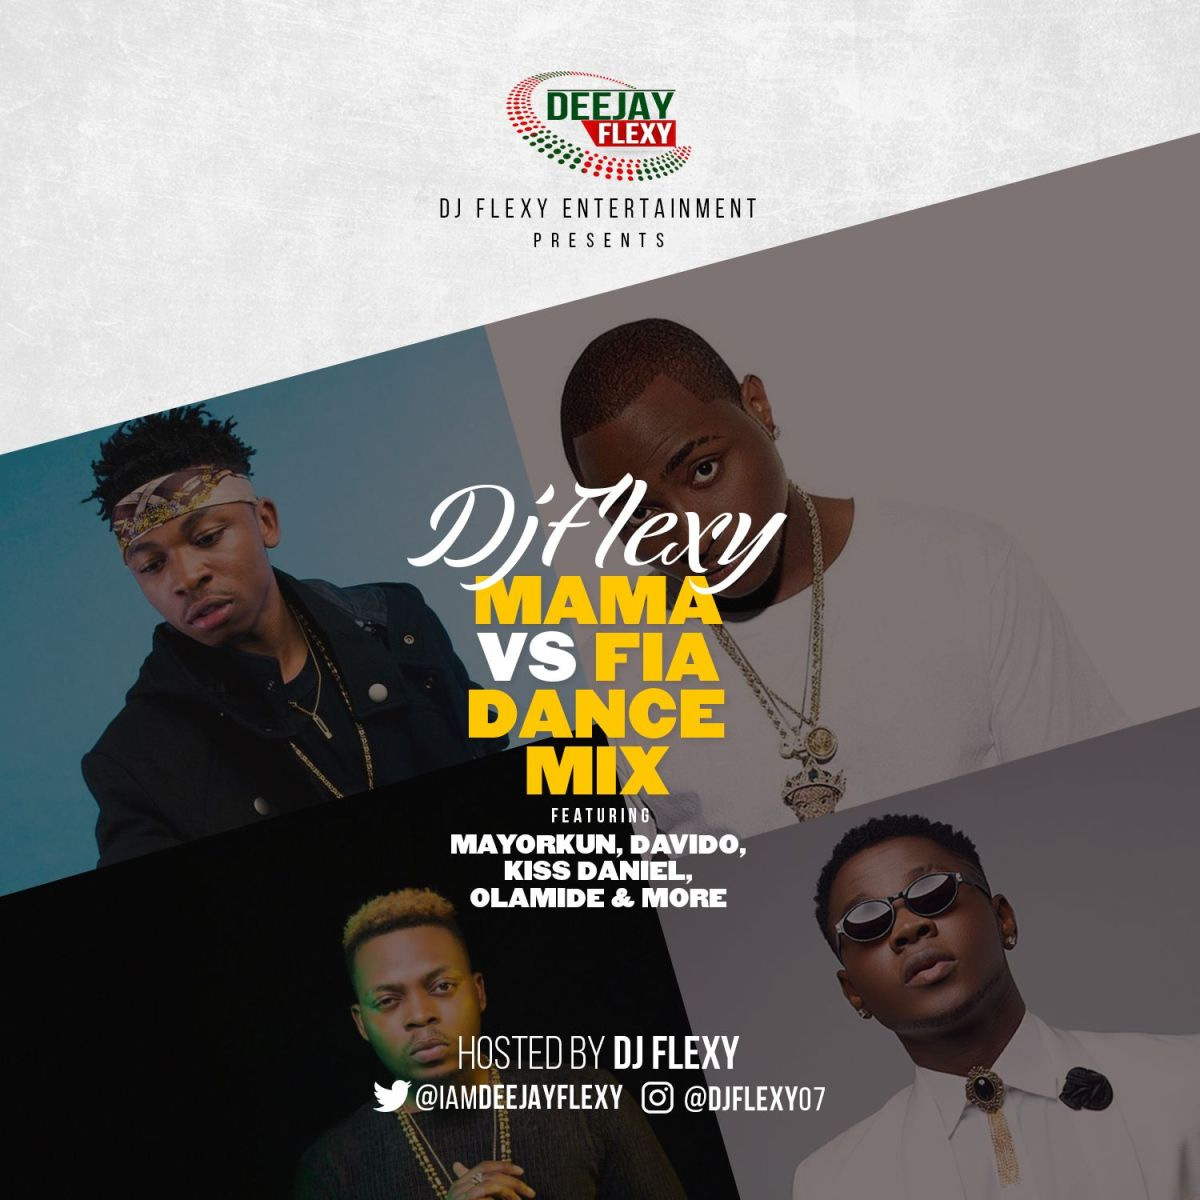 MIXTAPE: DJ Flexy - Mama Vs Fia Dance Mix Ft. Mayorkun, Davido, Kiss Daniel, Olamide & More